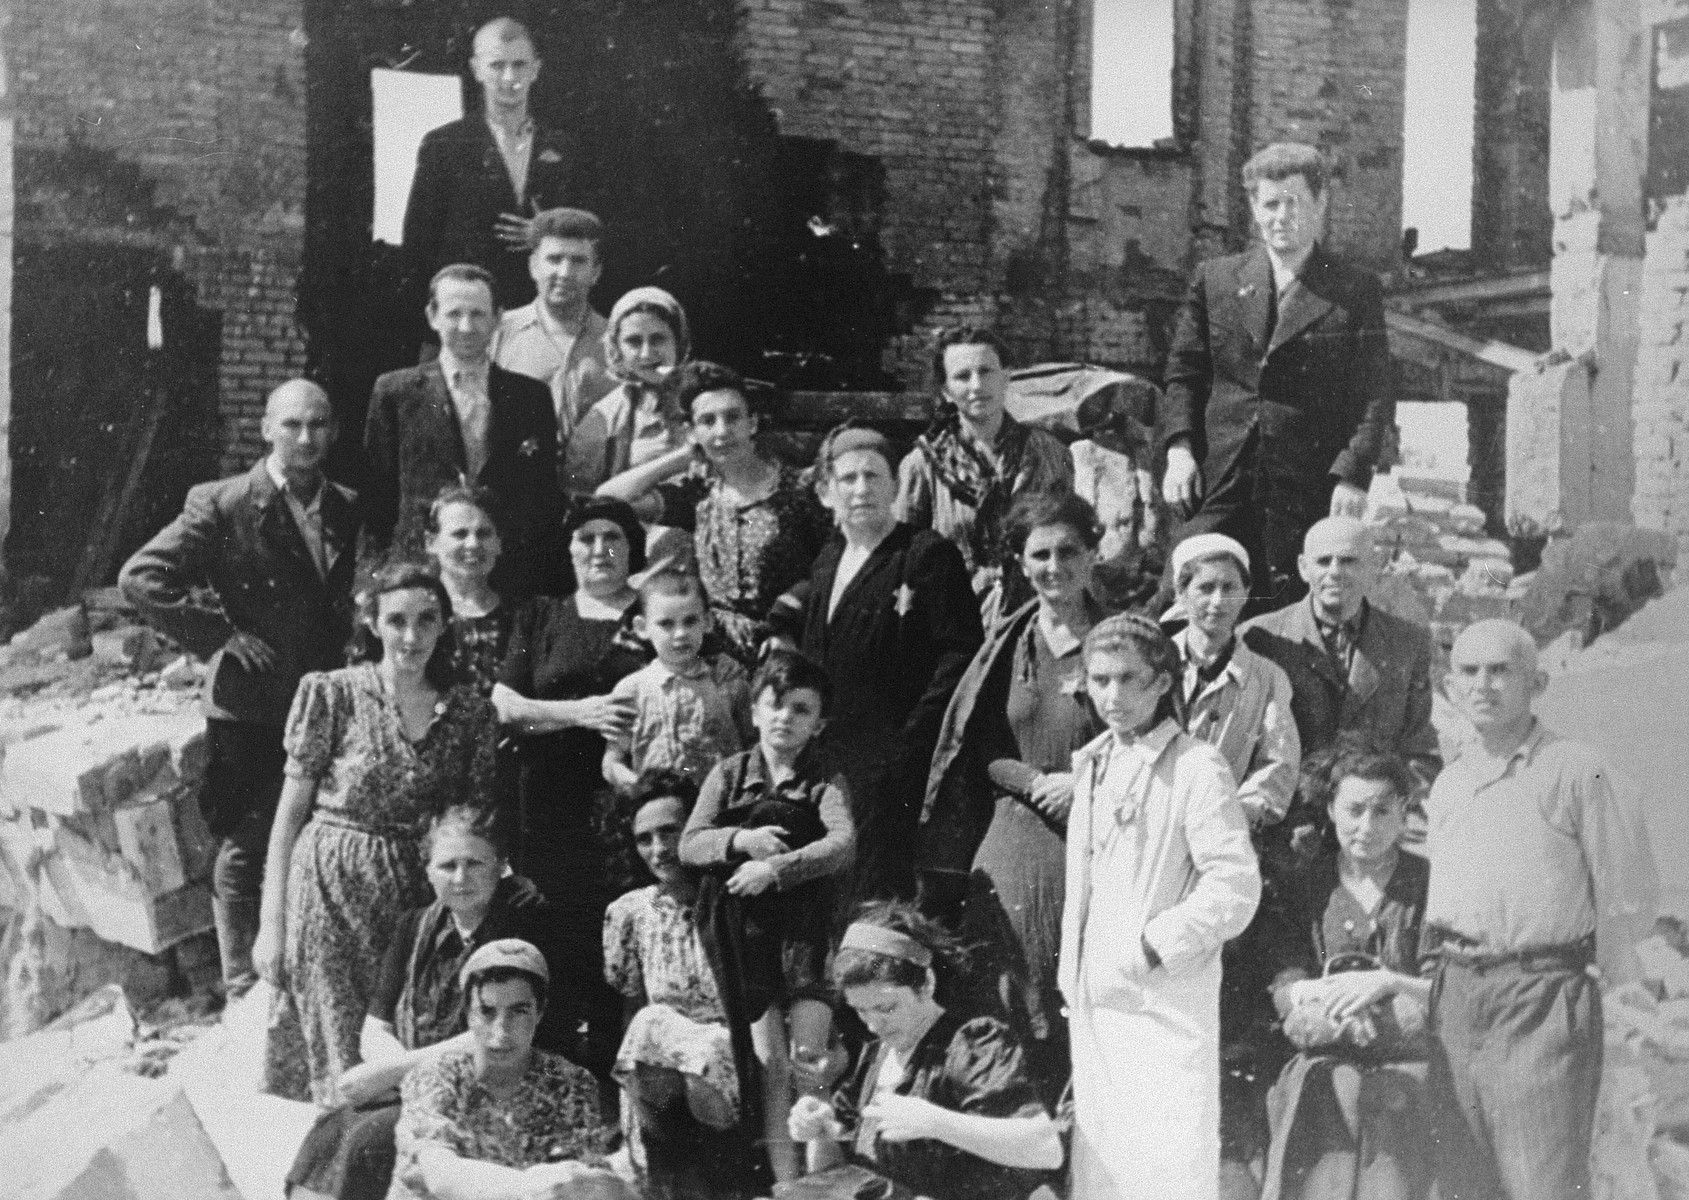 Survivors of a malina, or bunker, in the Kovno ghetto.  This bunker, under the Block C apartment complex was one of the most sophisticated in the ghetto, and one of the only to hold.  Built by the engineers Feivel Goldschmidt and Indursky, it included its own ventilation system.  Thirty four people hid in it for a total iof 38 days.    Standing on the left, third from the top is Rabbi Ephraim Oshry, behind him is Haim Leibowitz.  Seated is the dentist Bat Sheva Schmidt. Others hidden in this bunker include Basya Lipman, Mrs. Chodosh, Ida Schalansky and her children Moishe and Noachka, Yosha the butcher, Italya Garber, Berel Penkinsky. Chaim ?, Doniyel ?, Hershel ?, Mr. Dinner and Hillel Birger.  Prior to the liberation by the Soviets, approximately 6,000 Jews were deported to concentration camps in Germany.  Others went into hiding within the ghetto. The Germans used fire bombs, smoke grenades and dogs to chase people out.  Approximately 100 Jews survived in malinas or bunkers , whereas thousands either burned to death or were shot trying to escape.